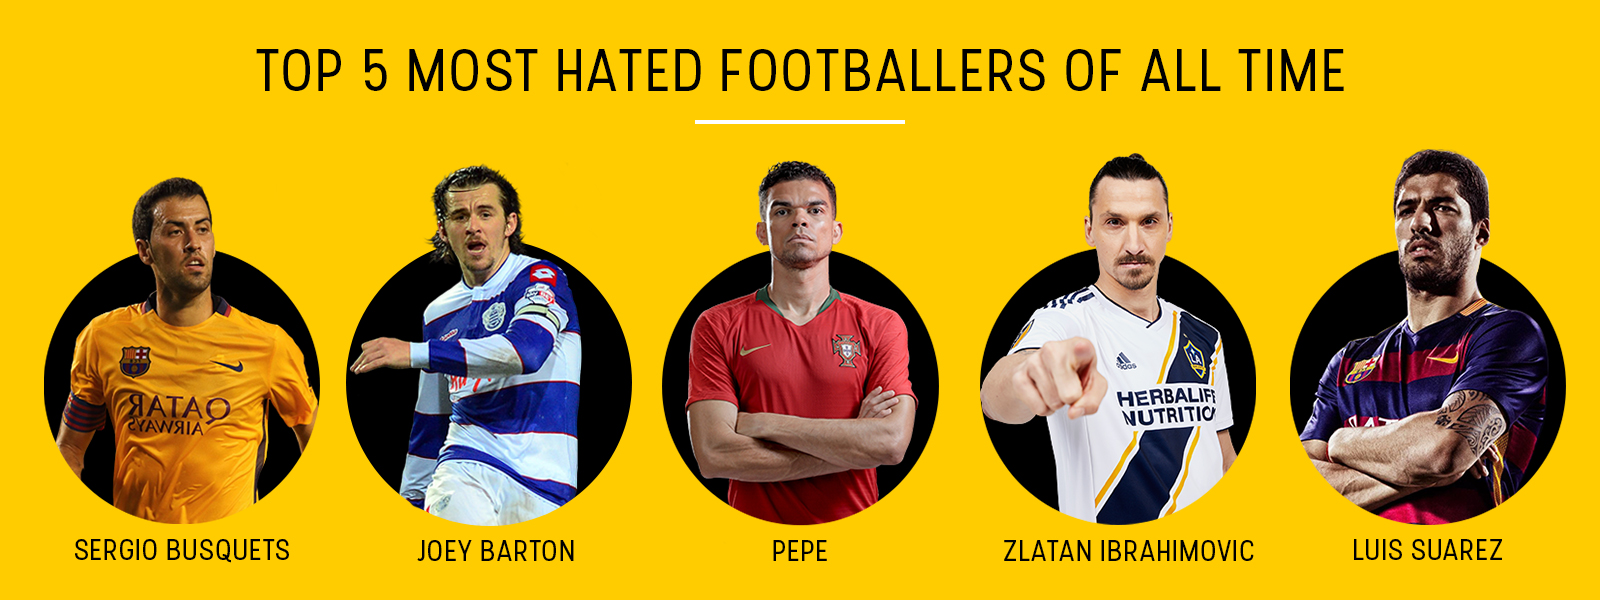 Top 5 most hated footballers of all time